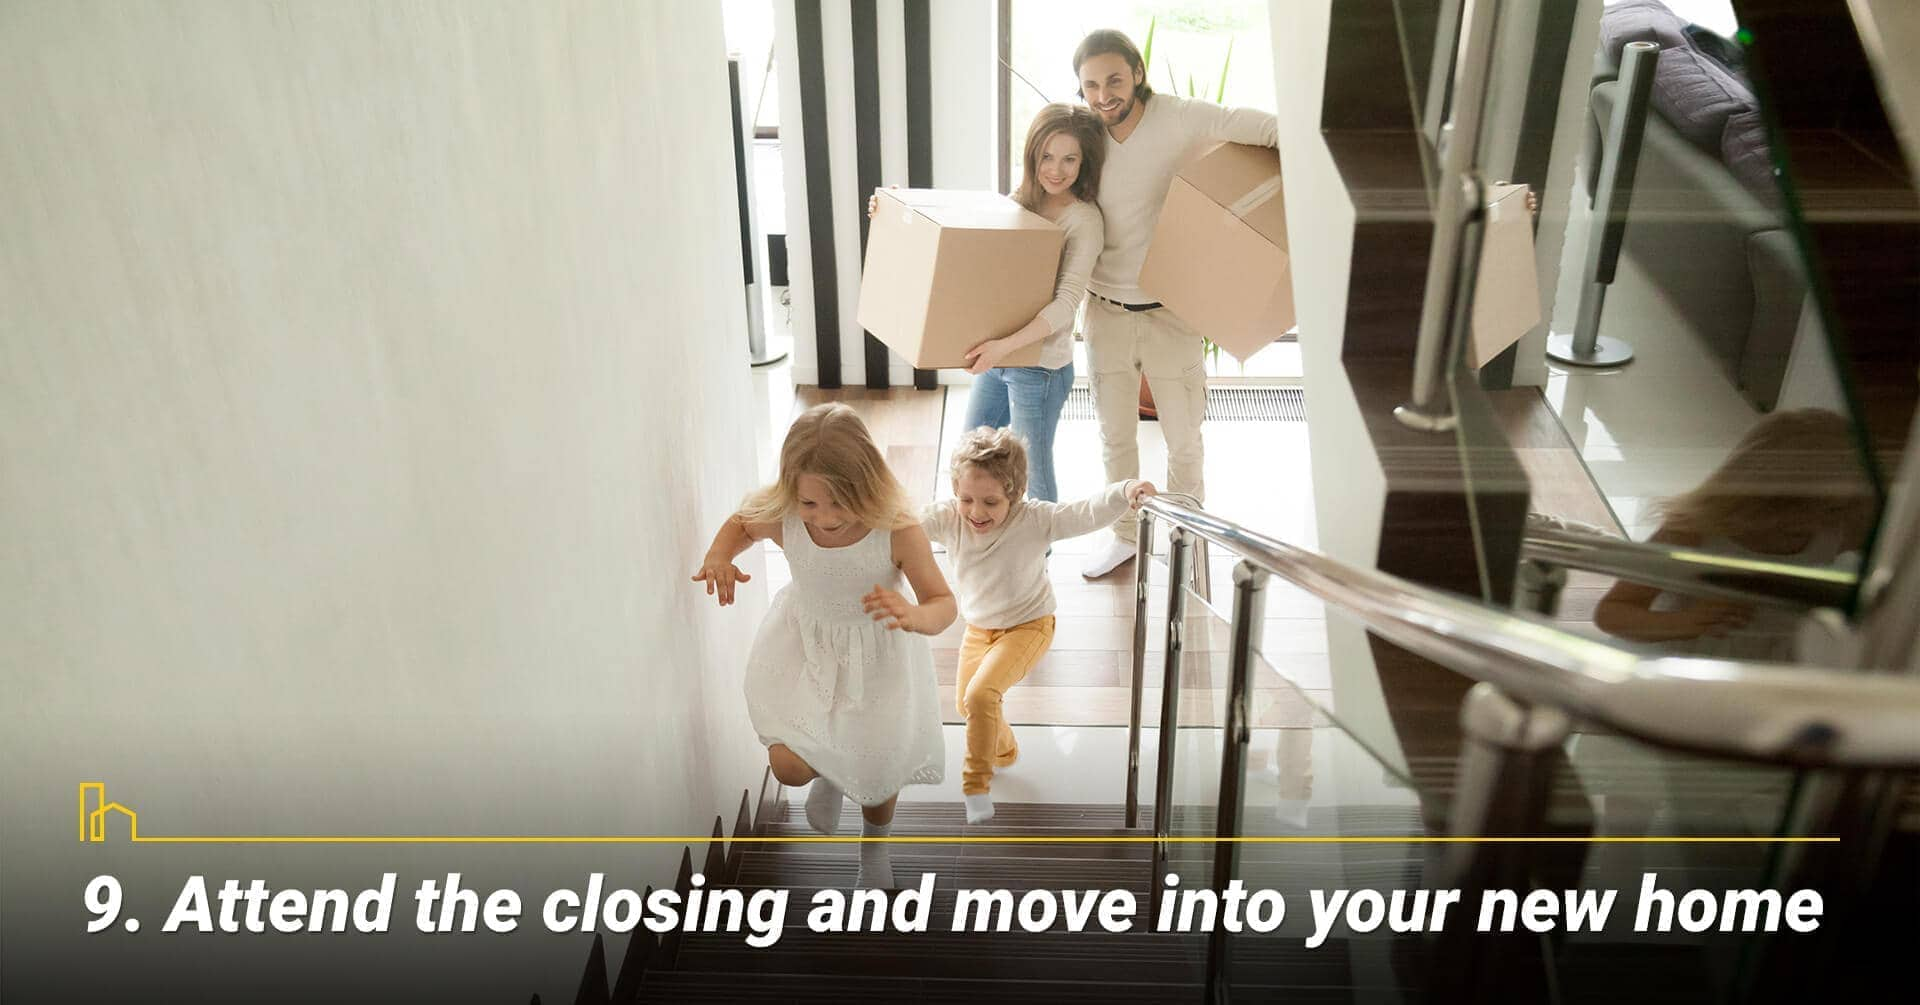 Attend the closing and move into your new home